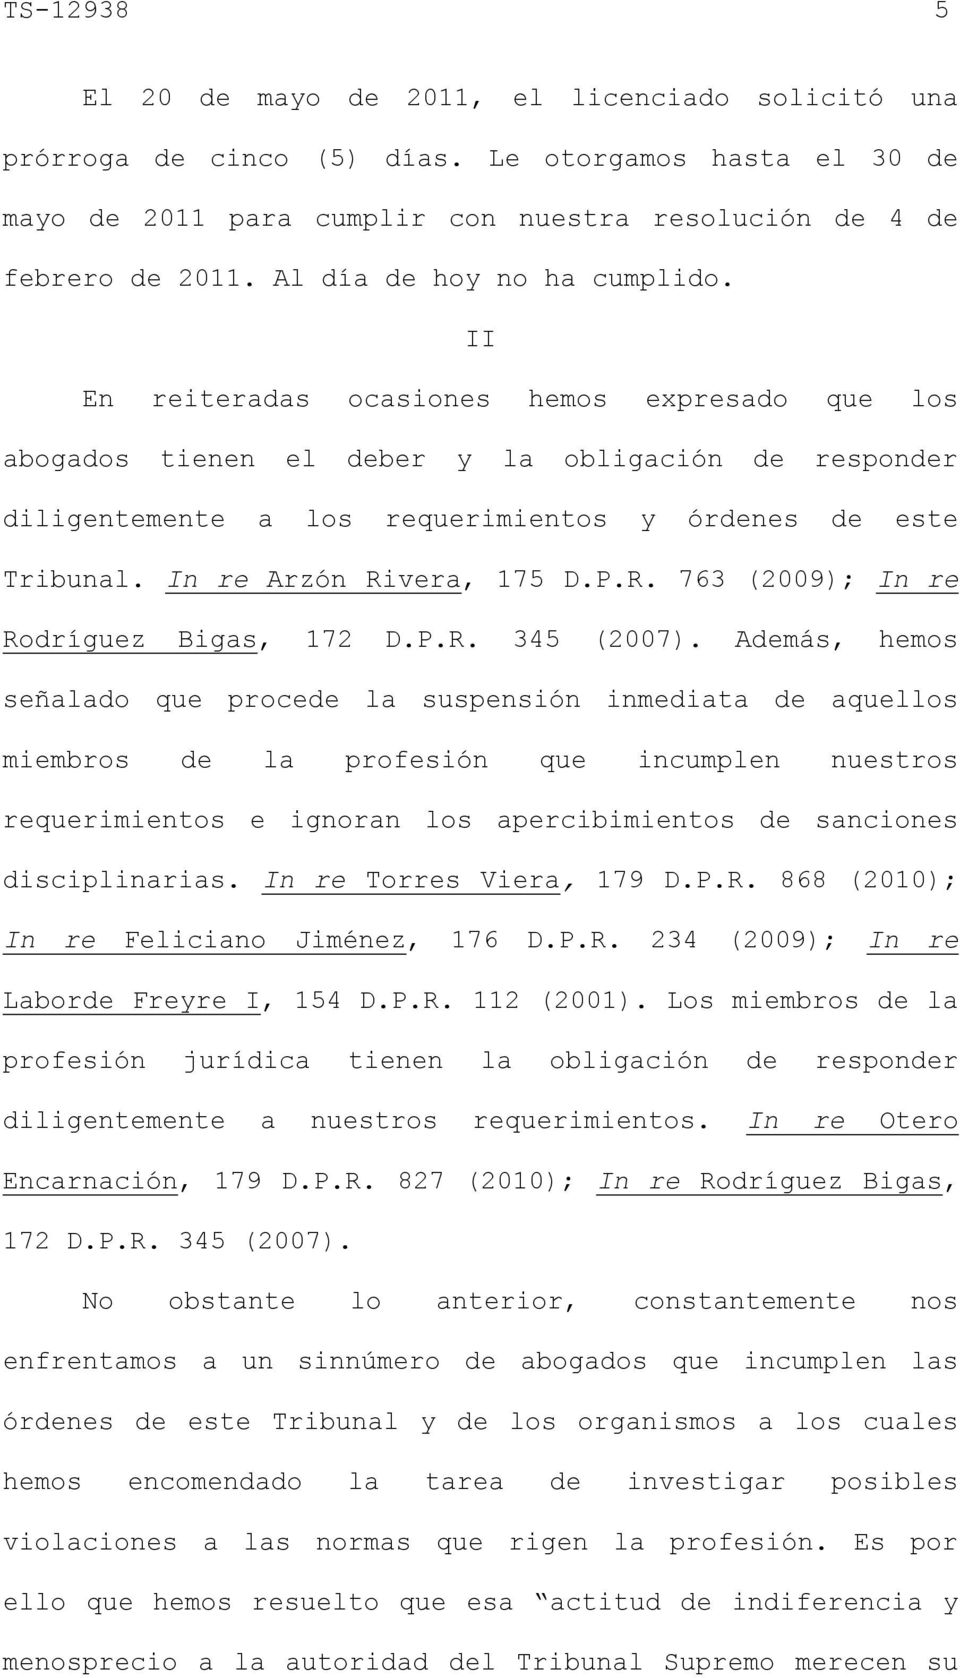 In re Arzón Rivera, 175 D.P.R. 763 (2009); In re Rodríguez Bigas, 172 D.P.R. 345 (2007).